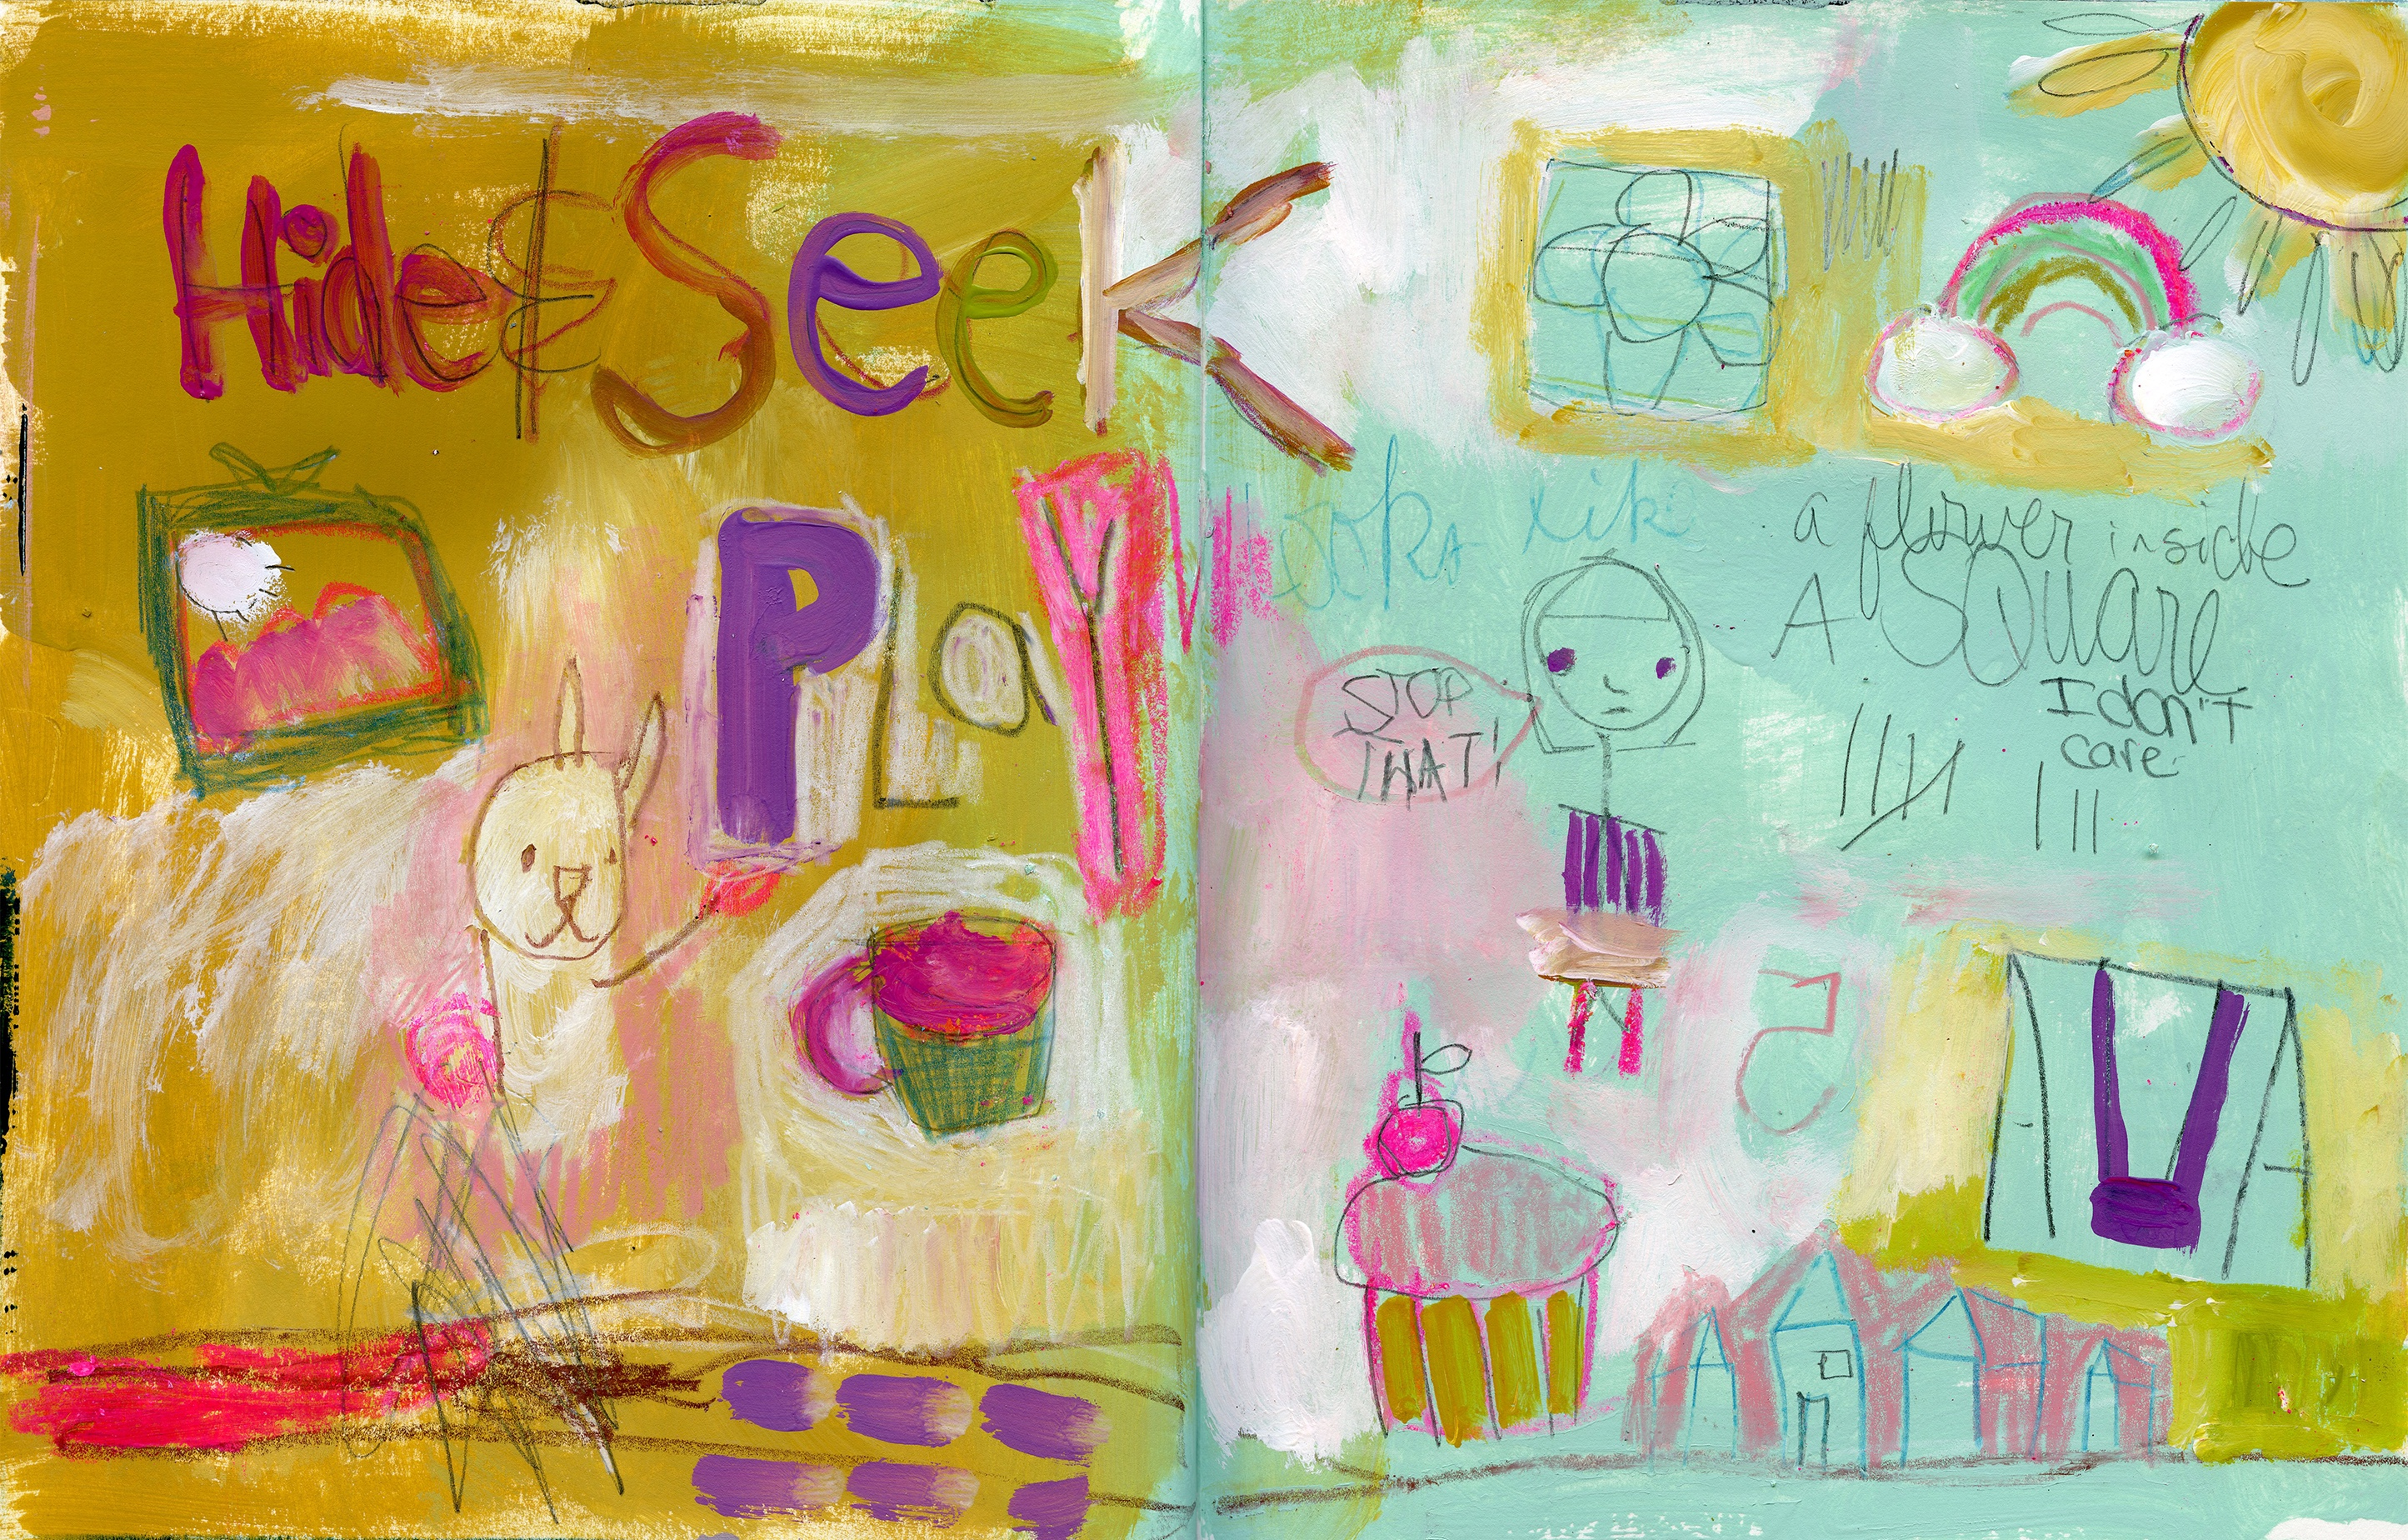 Sign Up for Paint Like a Child SELF WORK